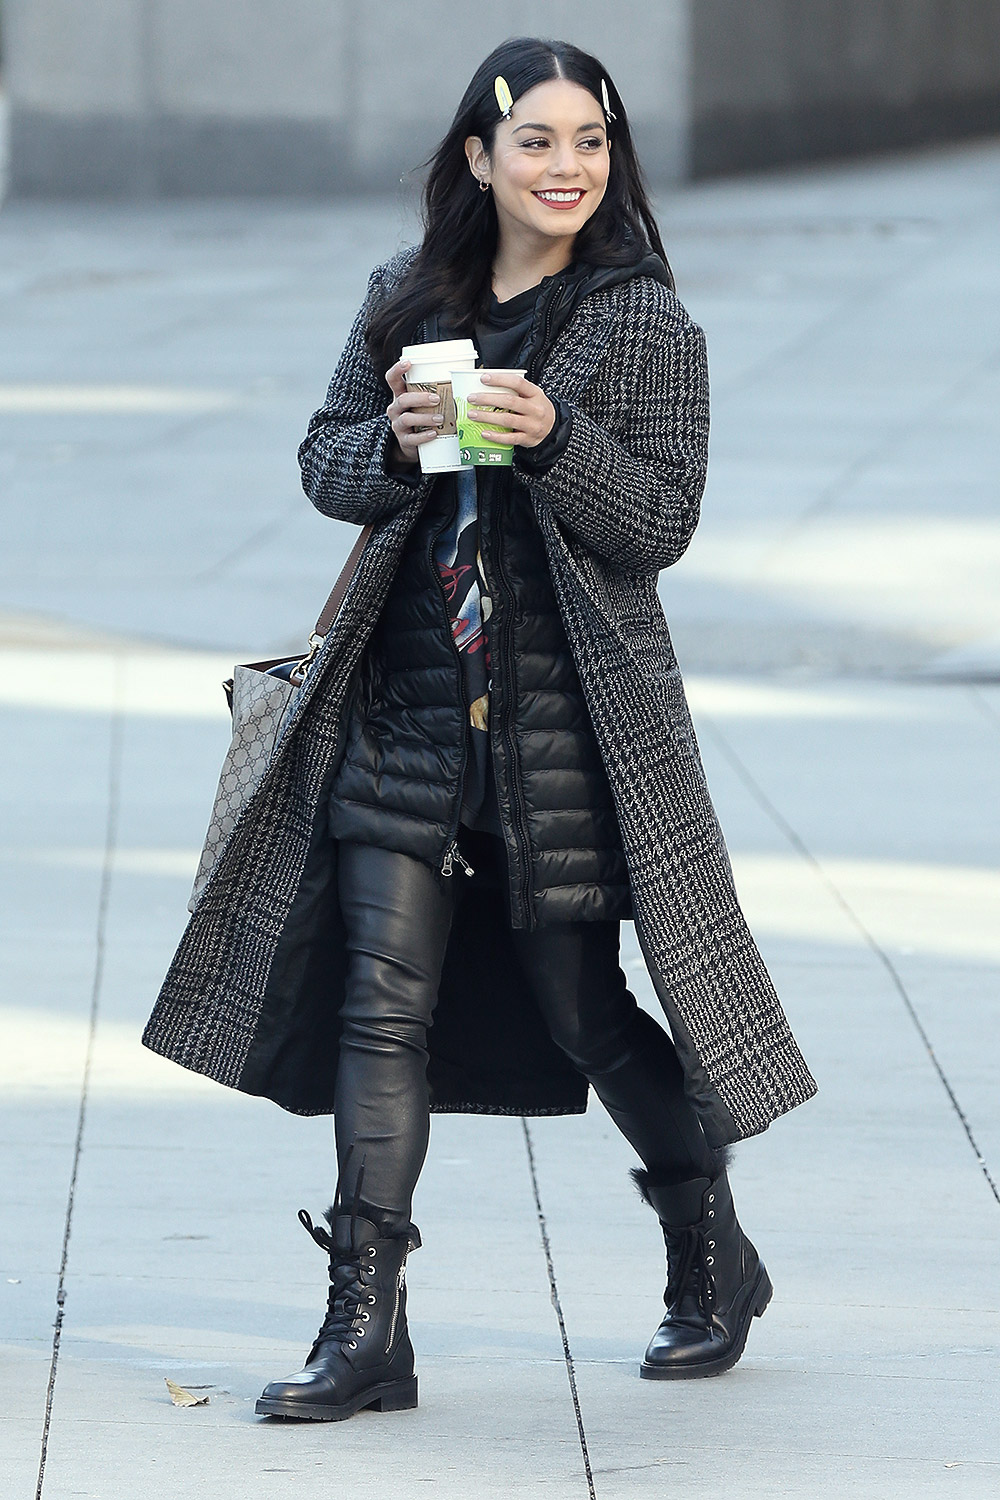 Vanessa Hudgens on the set of 'Second Act'